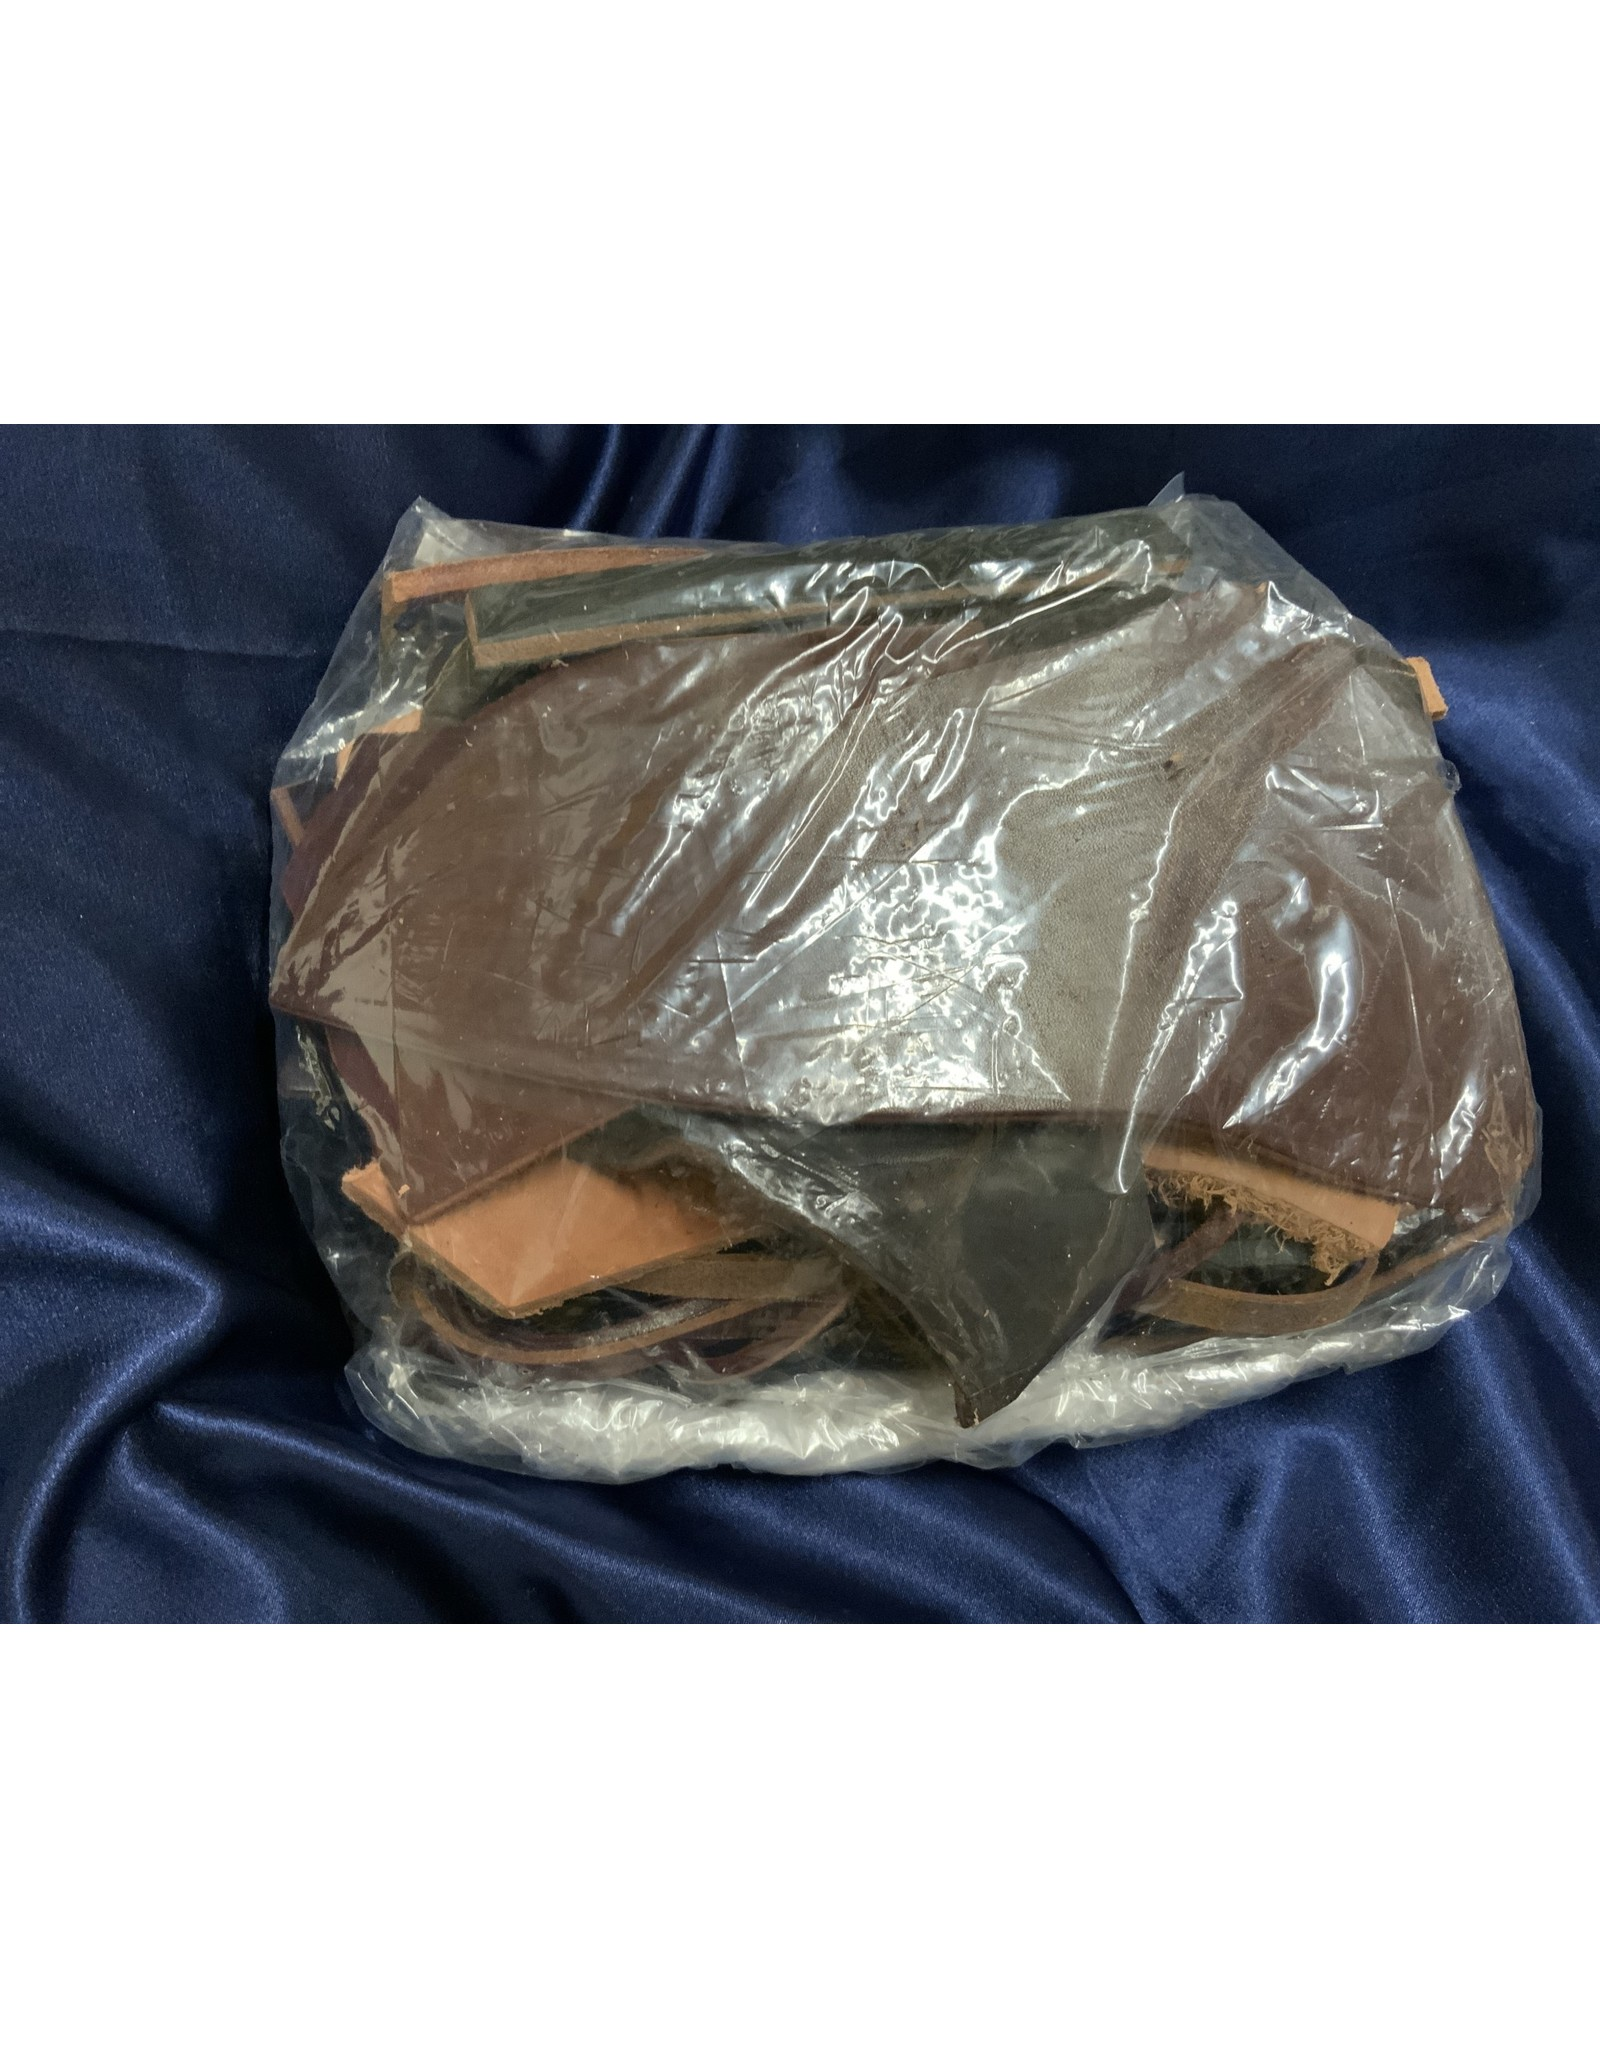 Bag o' Leather - 1lb- 656243